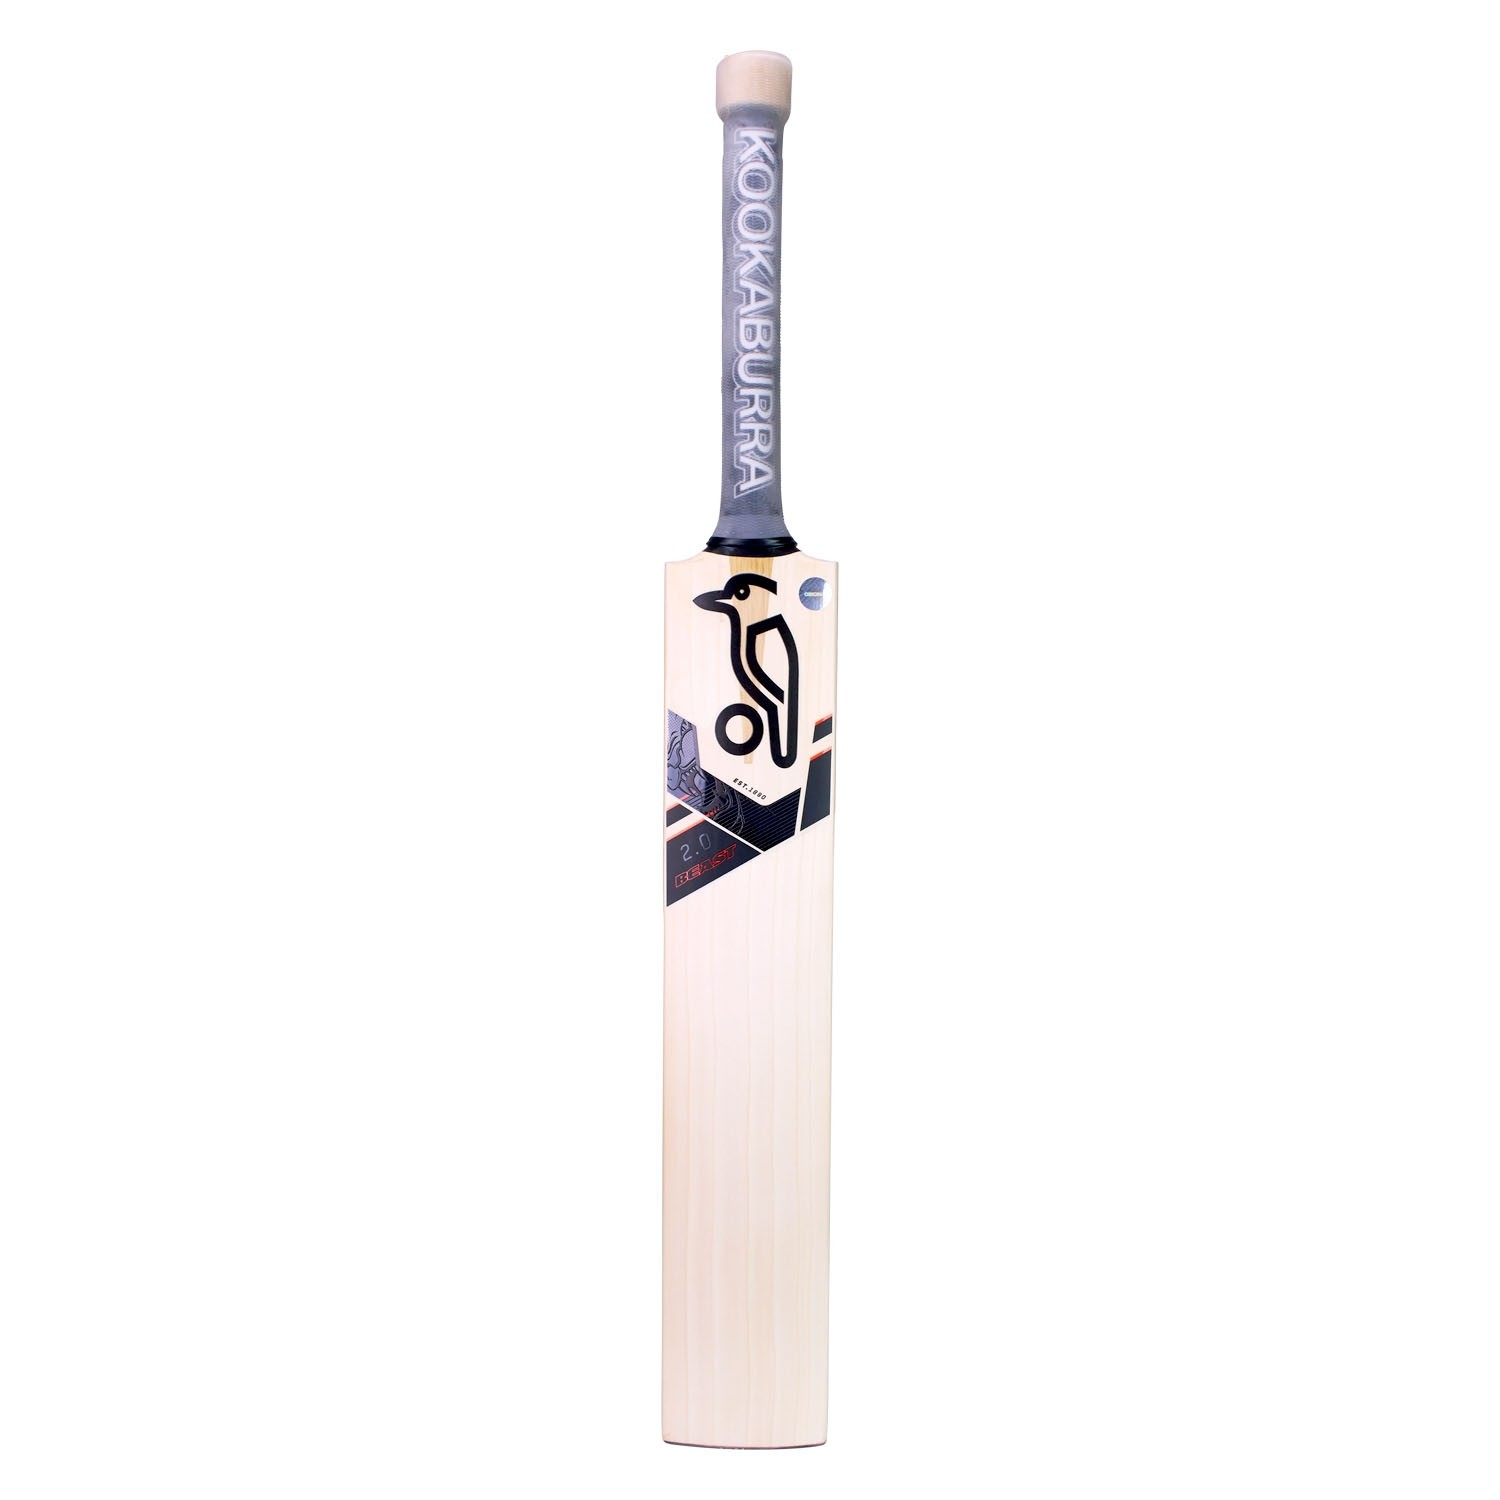 2021 Kookaburra Beast 2.0 Cricket Bat